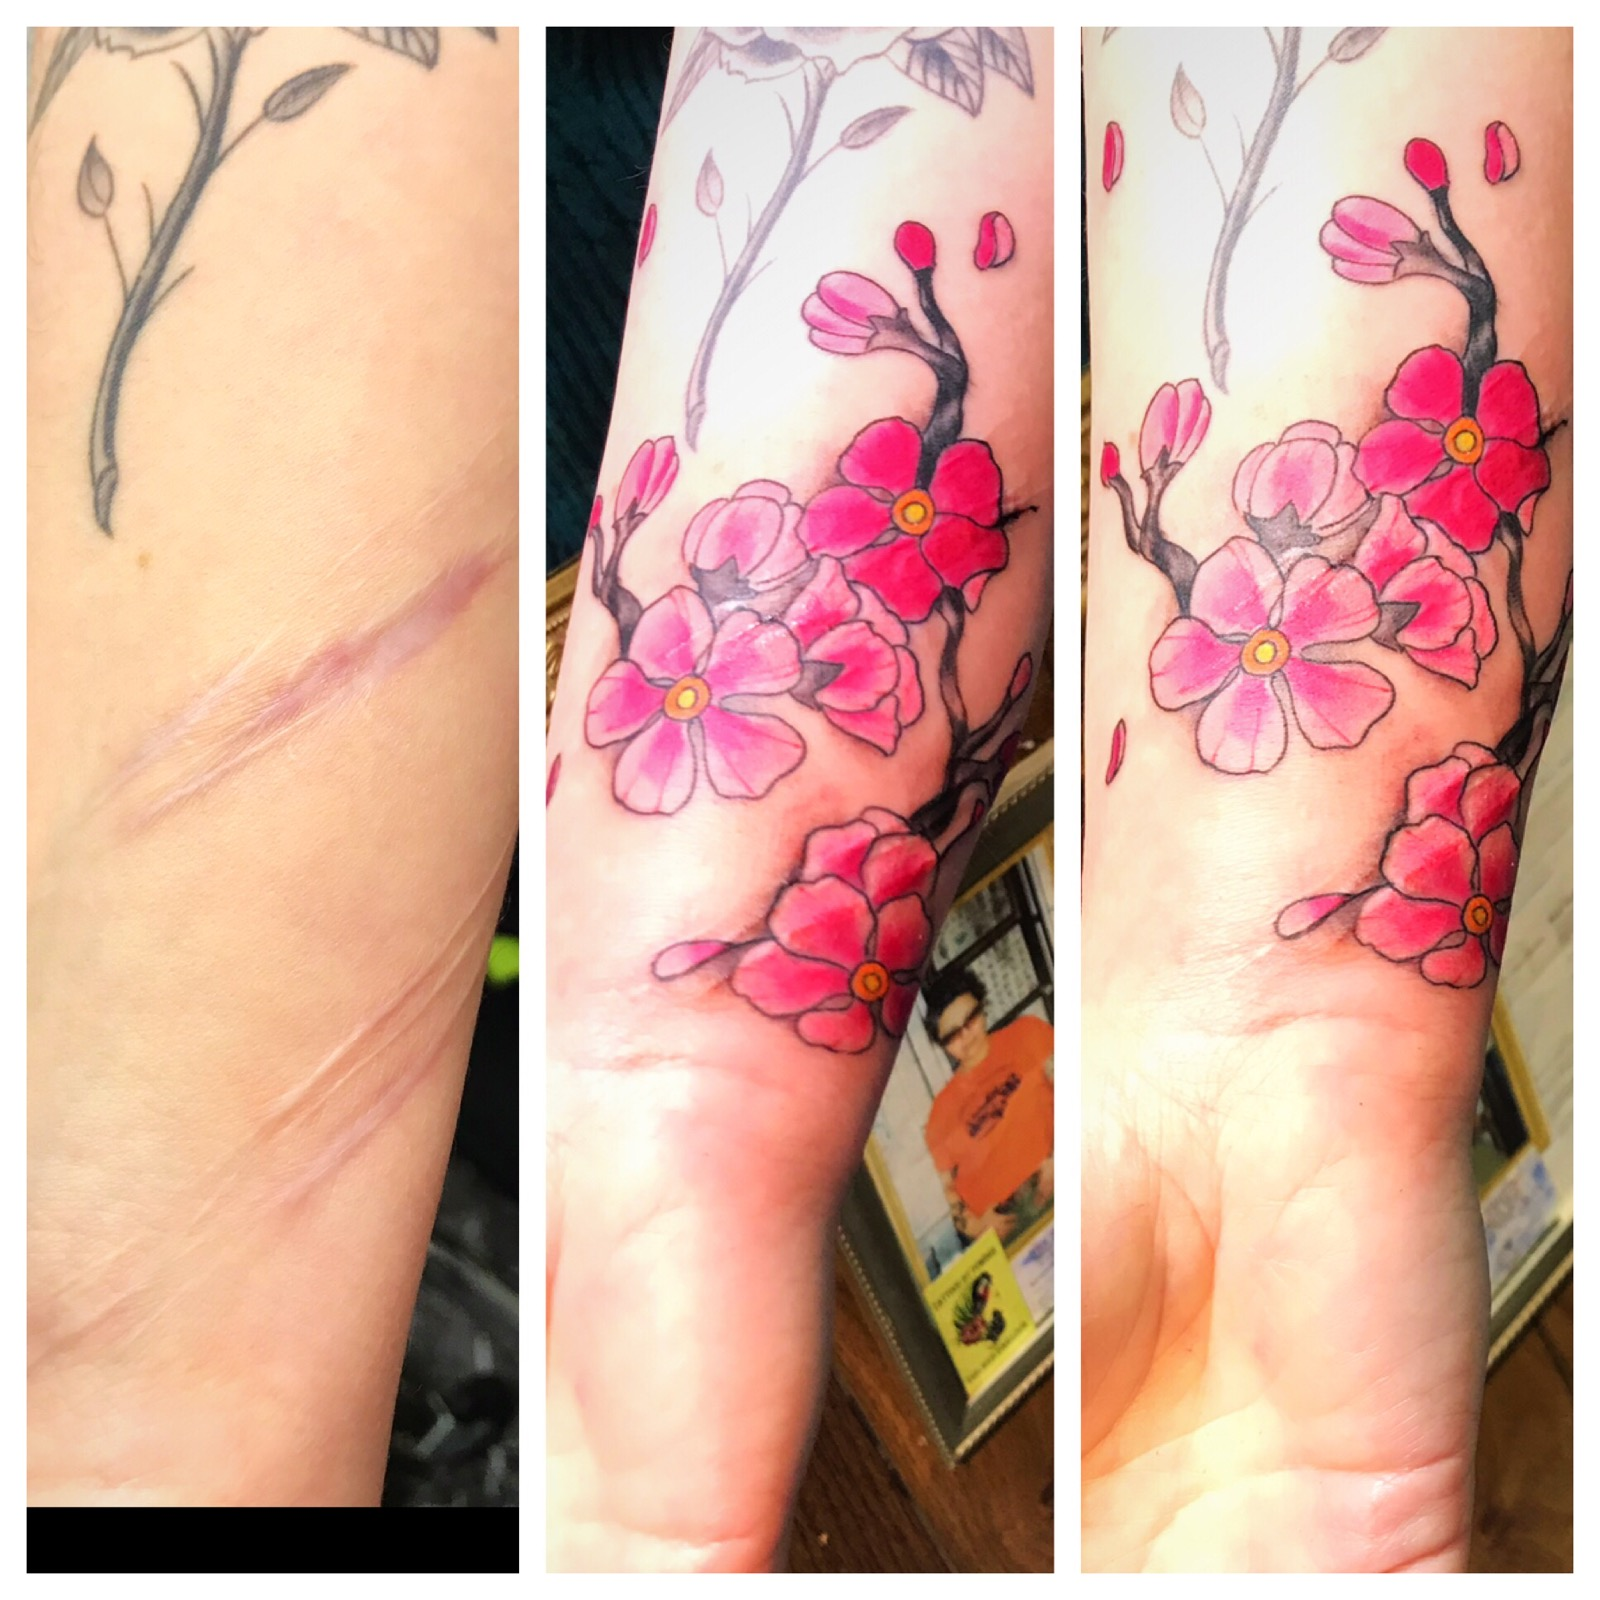 Tattoo Cover Up Scars with Cherry Blosso